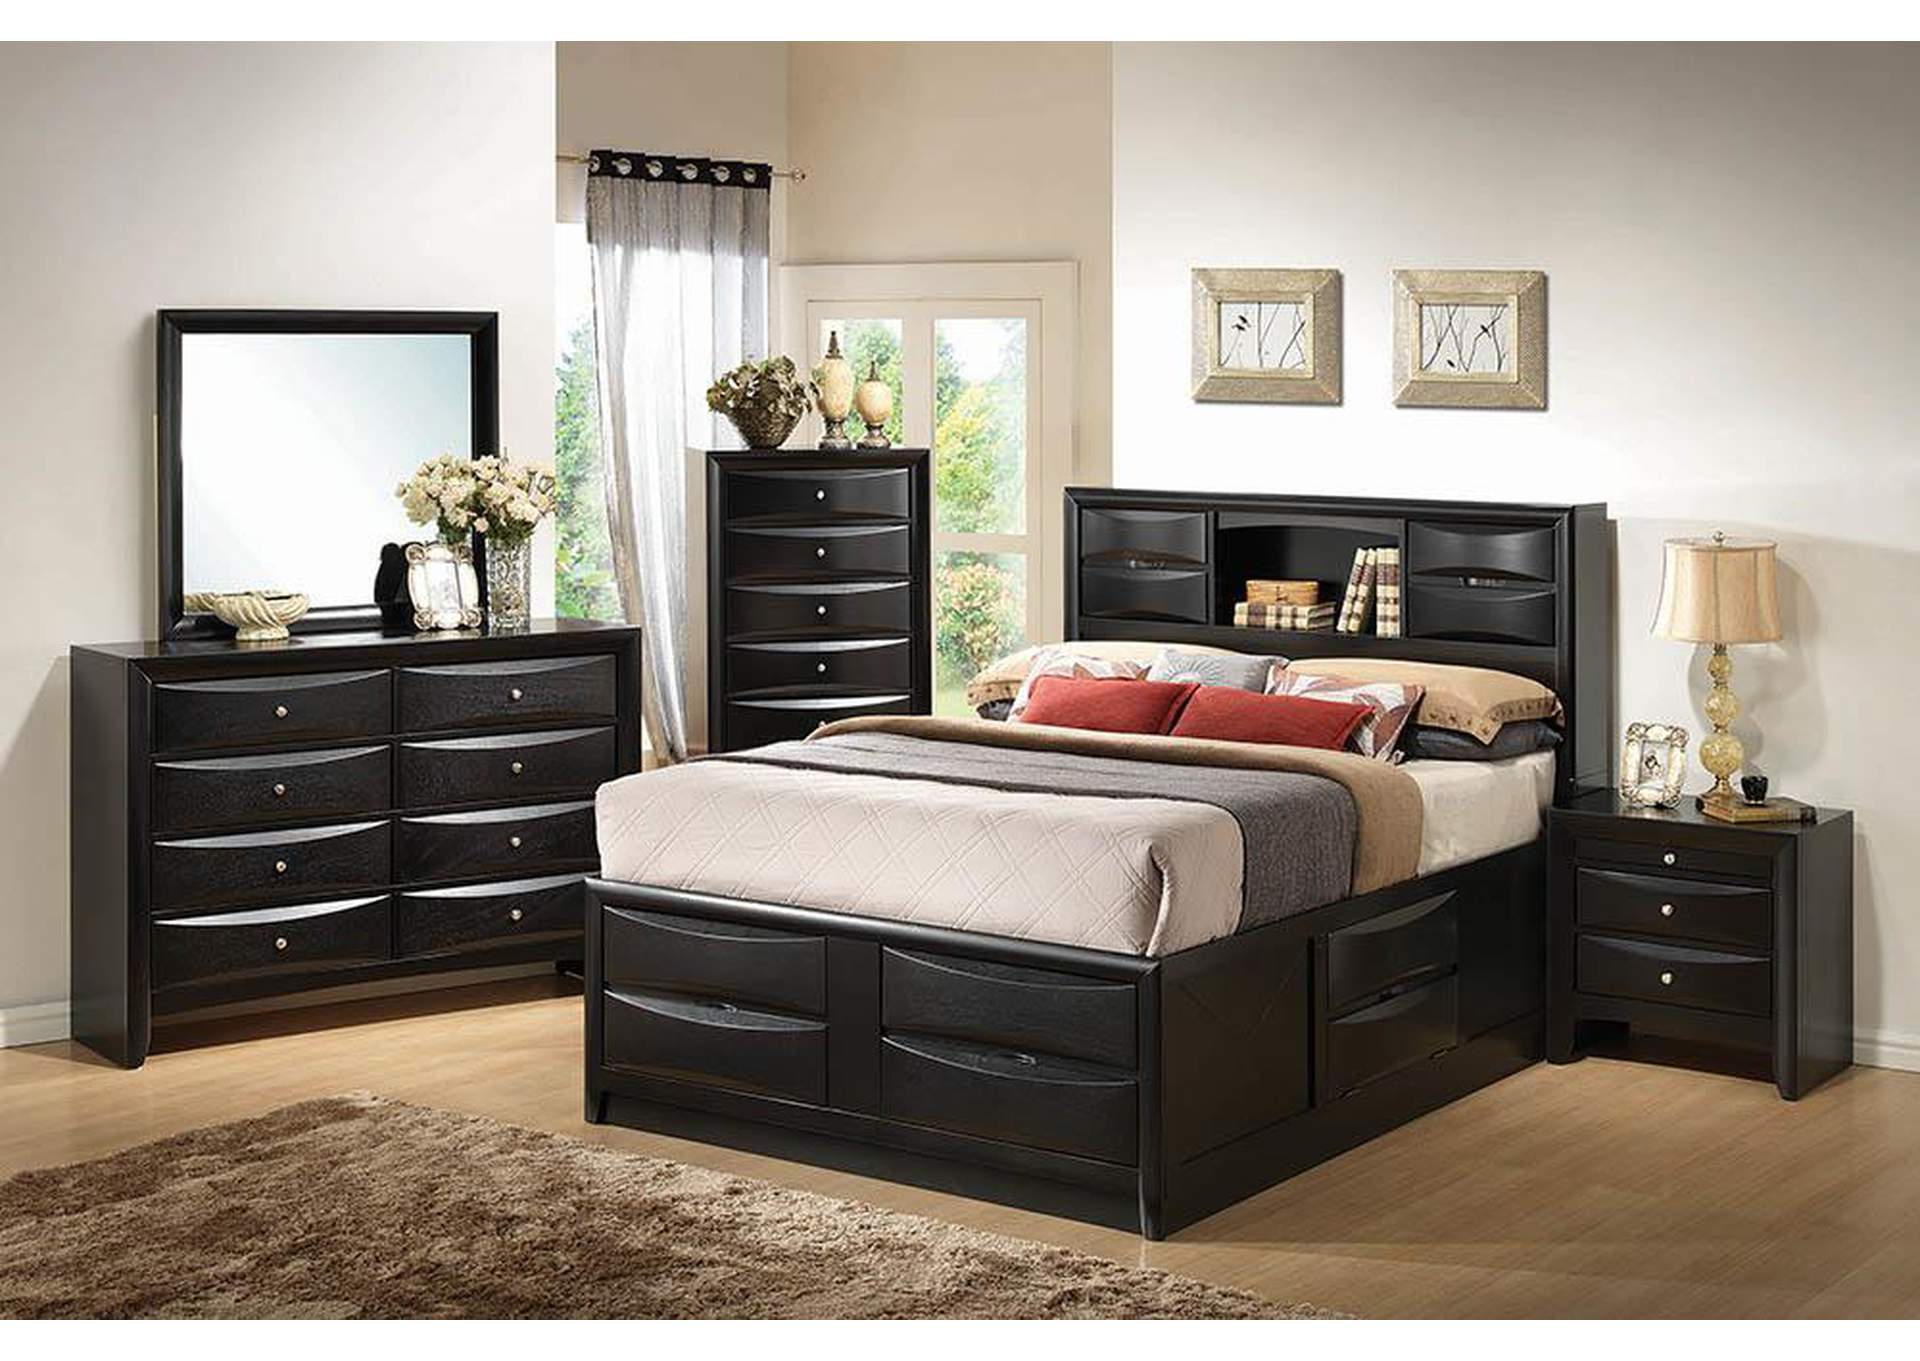 Briana Black Eastern King Storage Bed,Coaster Furniture